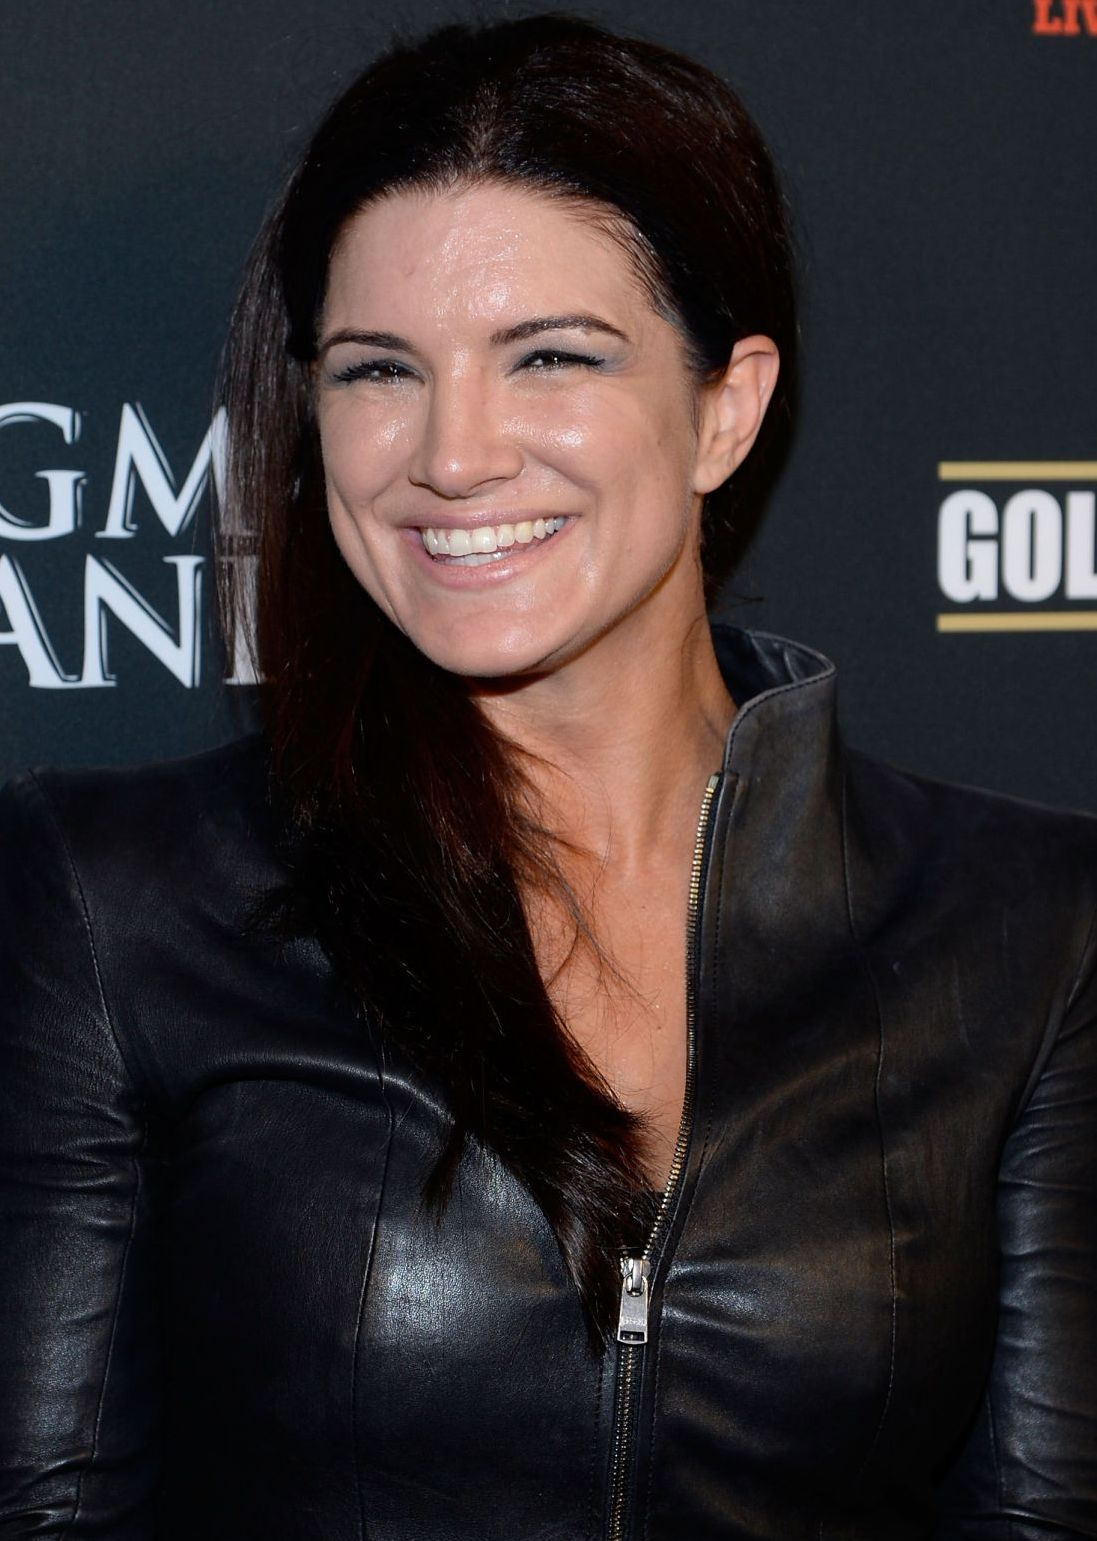 Celebrity Biography and photos: Gina Carano